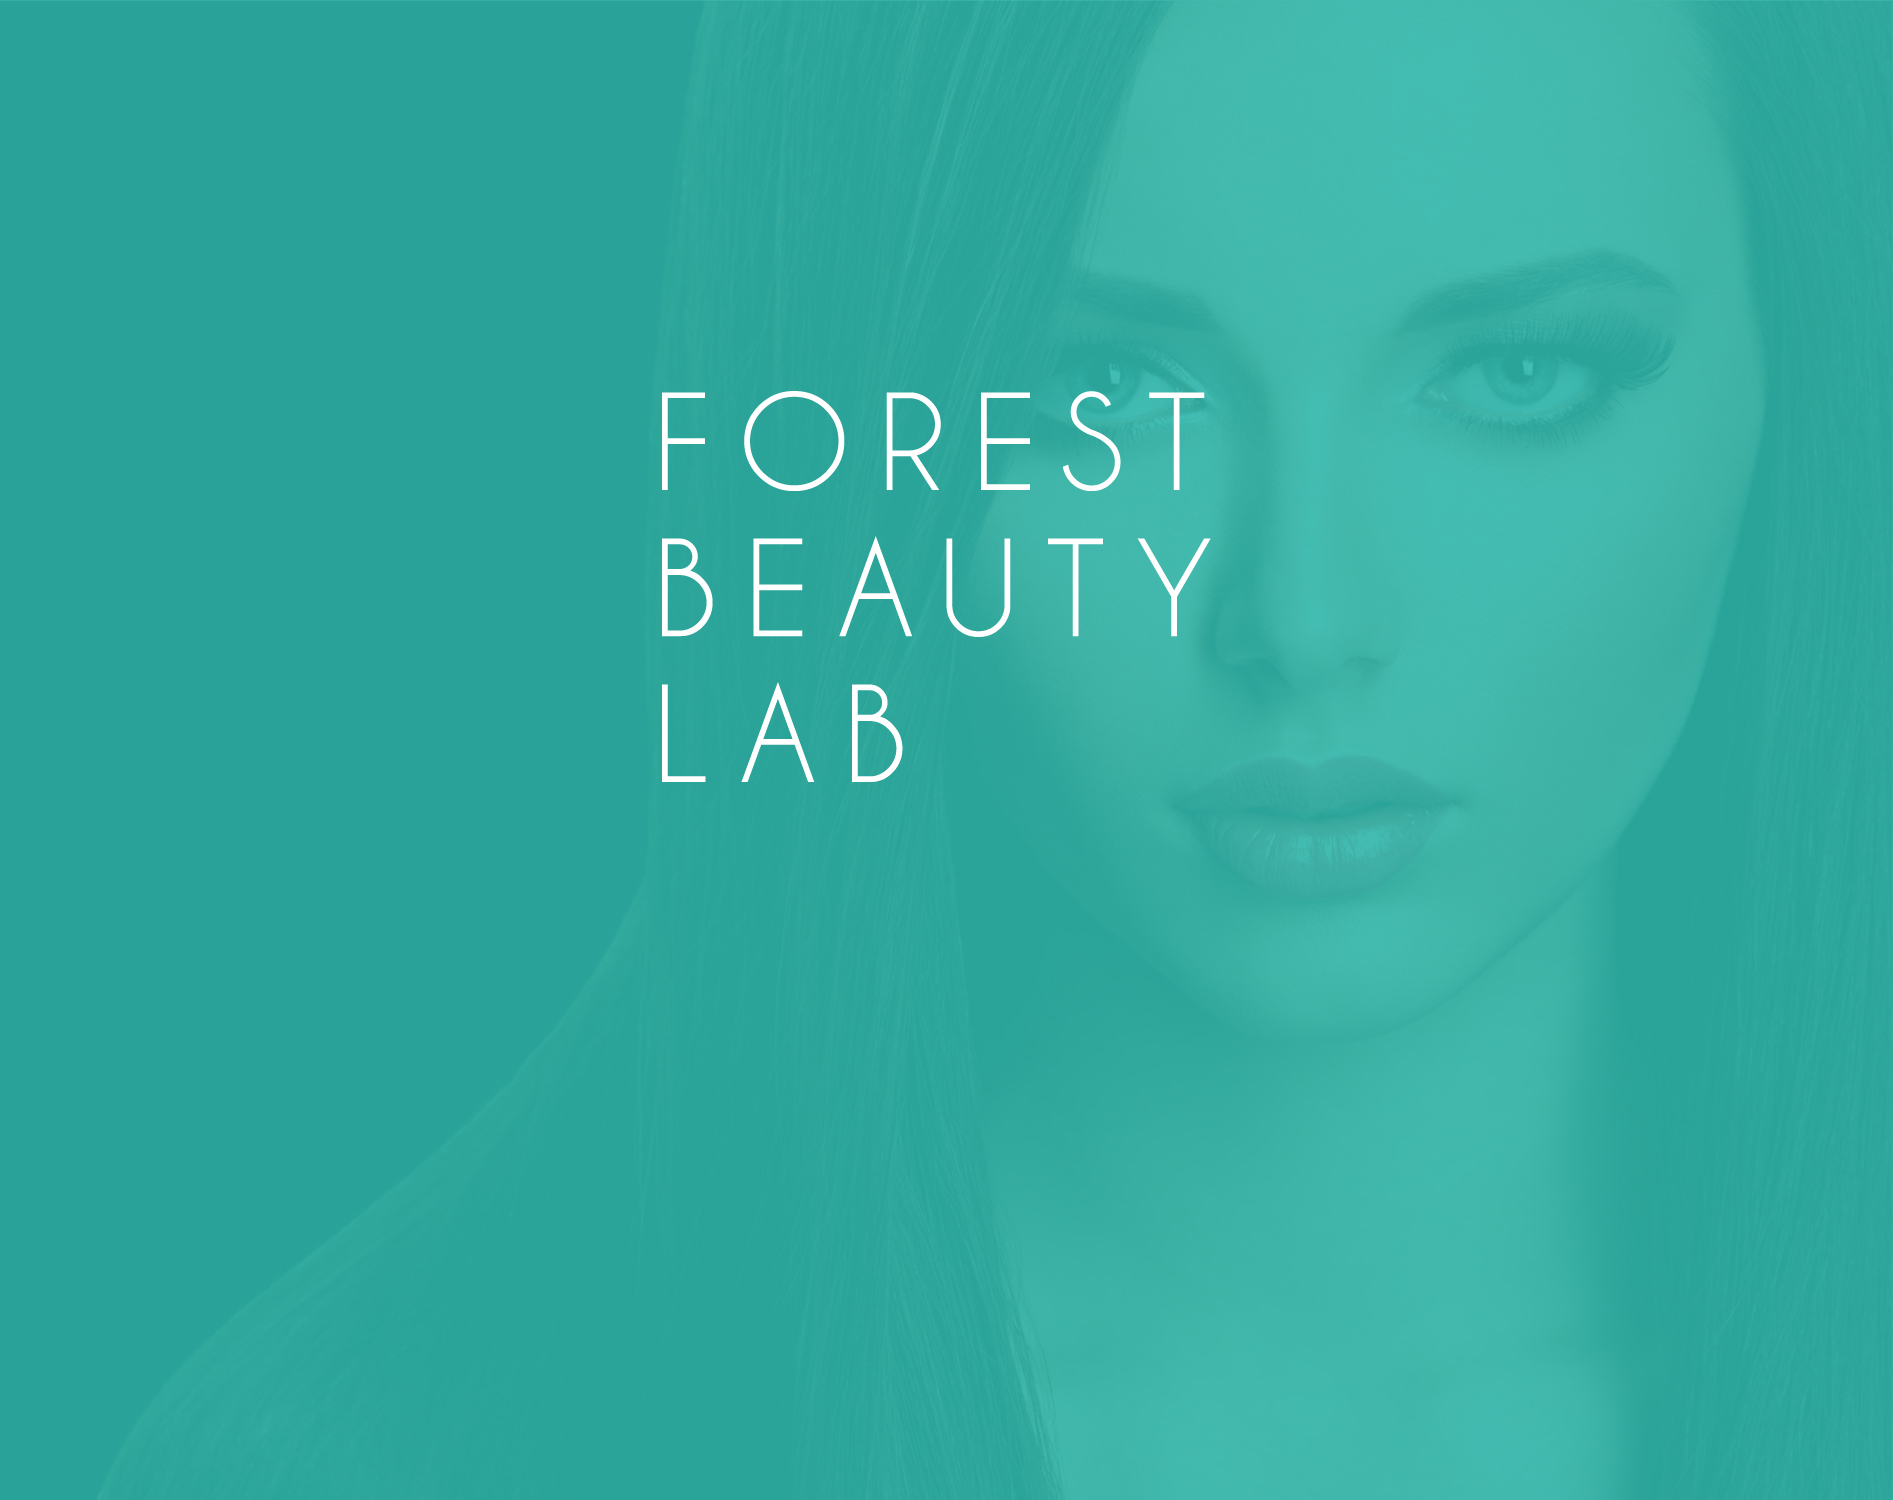 FOREST BEAUTY LAB